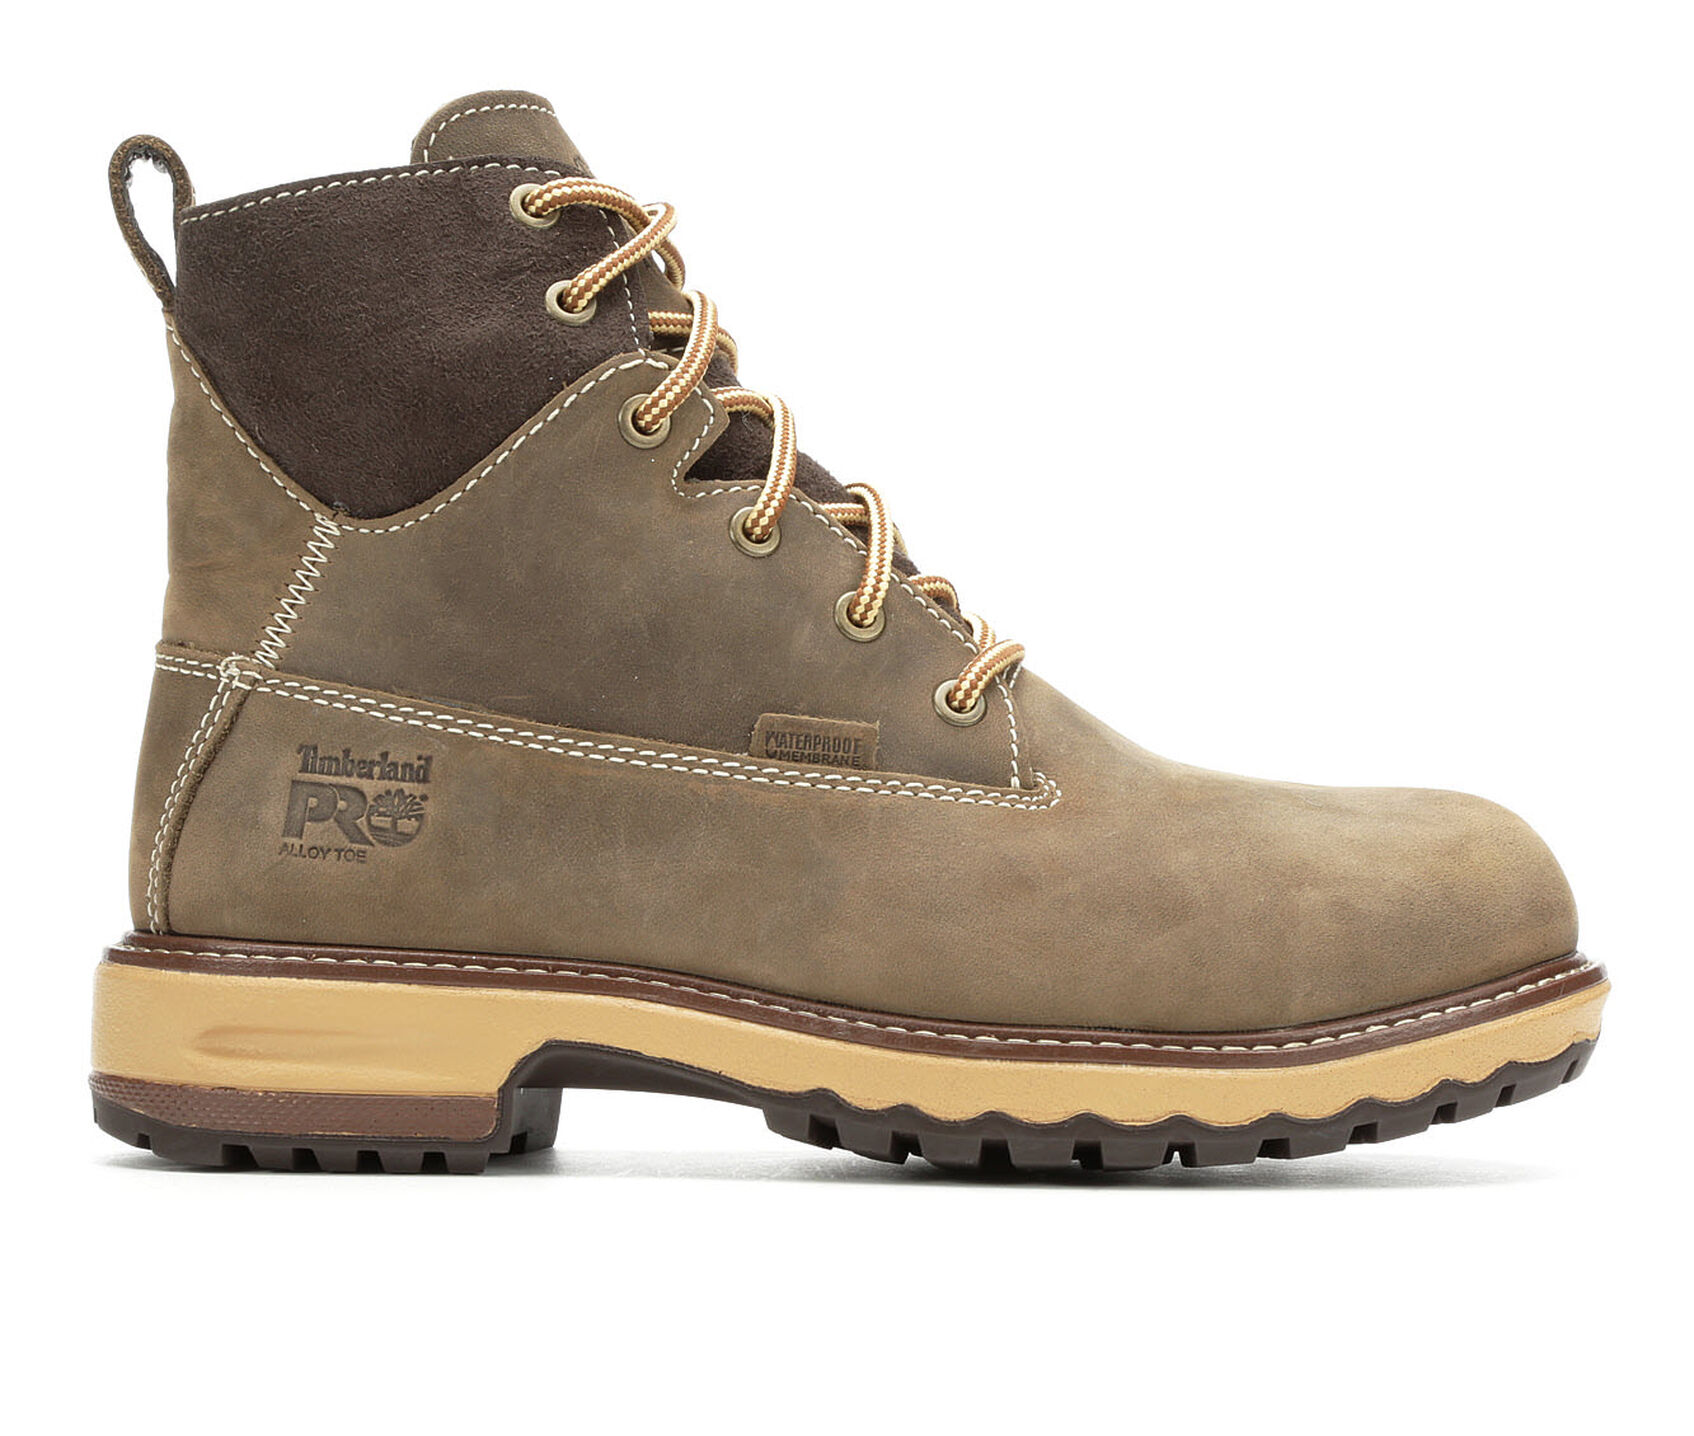 6f19beaab09 Women's Timberland Pro Hightower Alloy Toe Work Boots